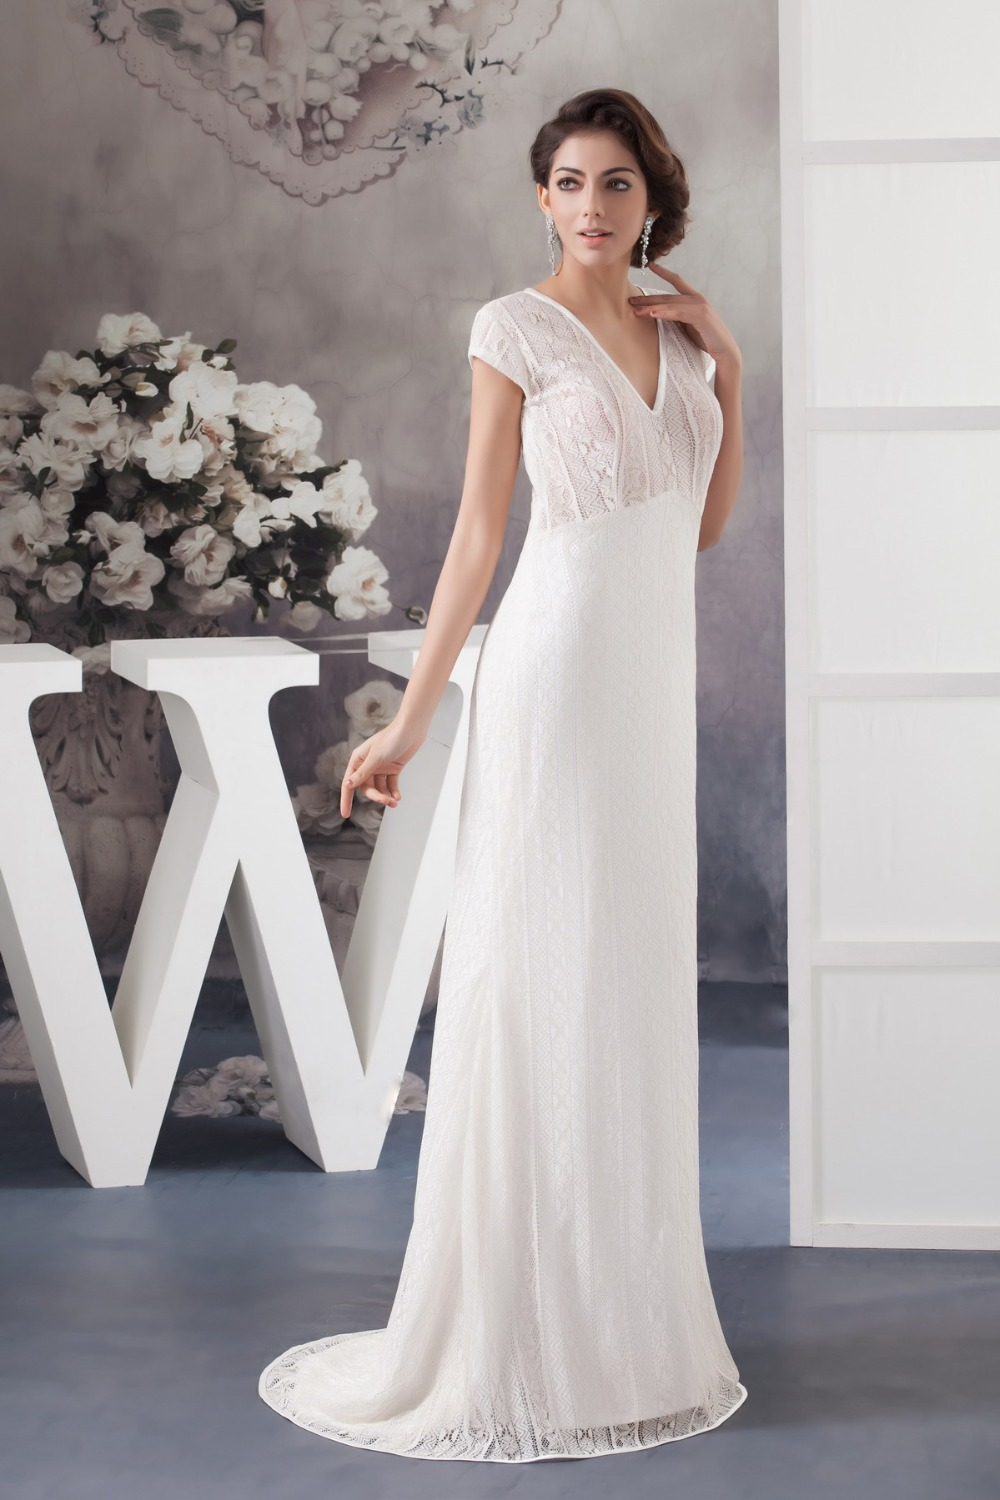 Wedding dresses for older brides cocktail dresses 2016 for Good wedding dresses for short brides